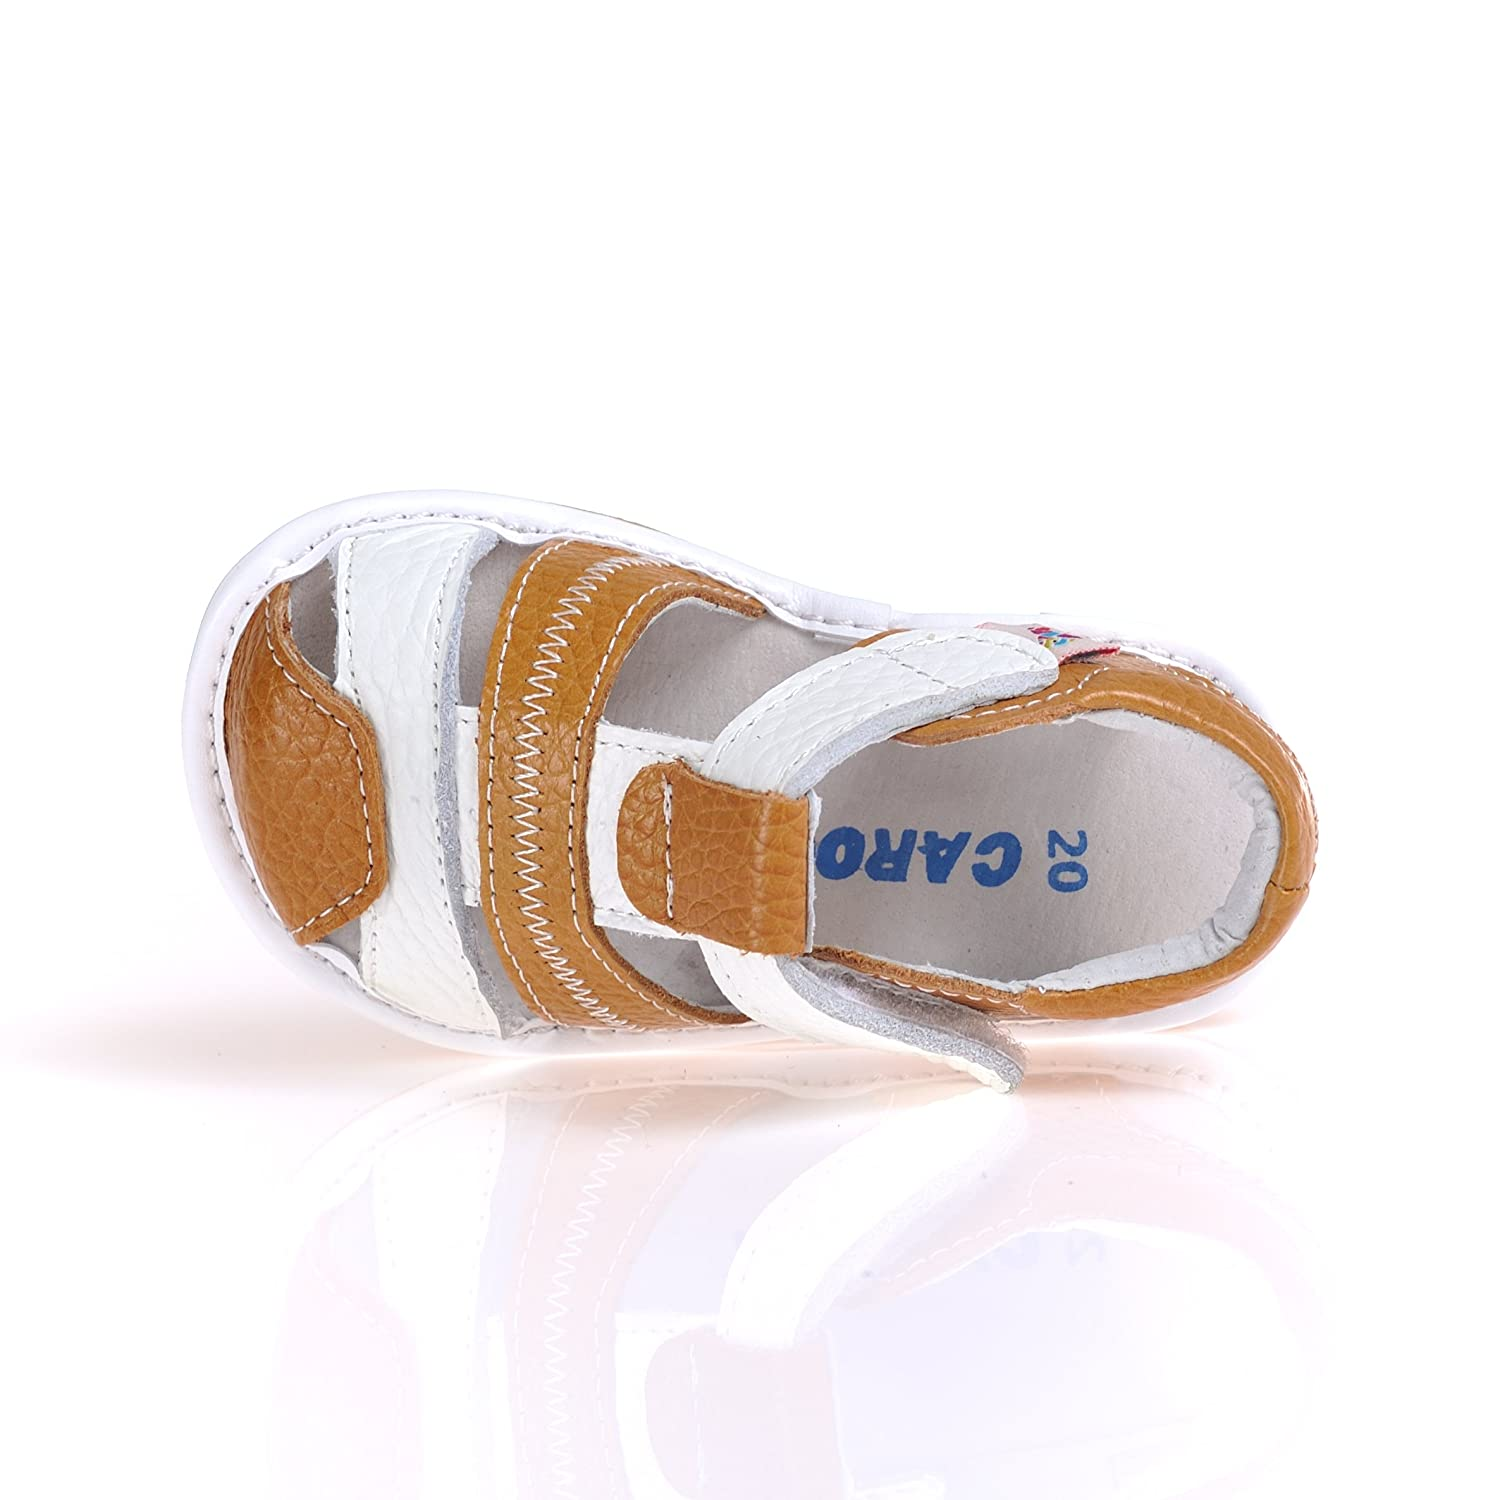 CAROCH Brown Leather Squeaky Sandals Shoes Baby Toddler Boy Size 4-10 US